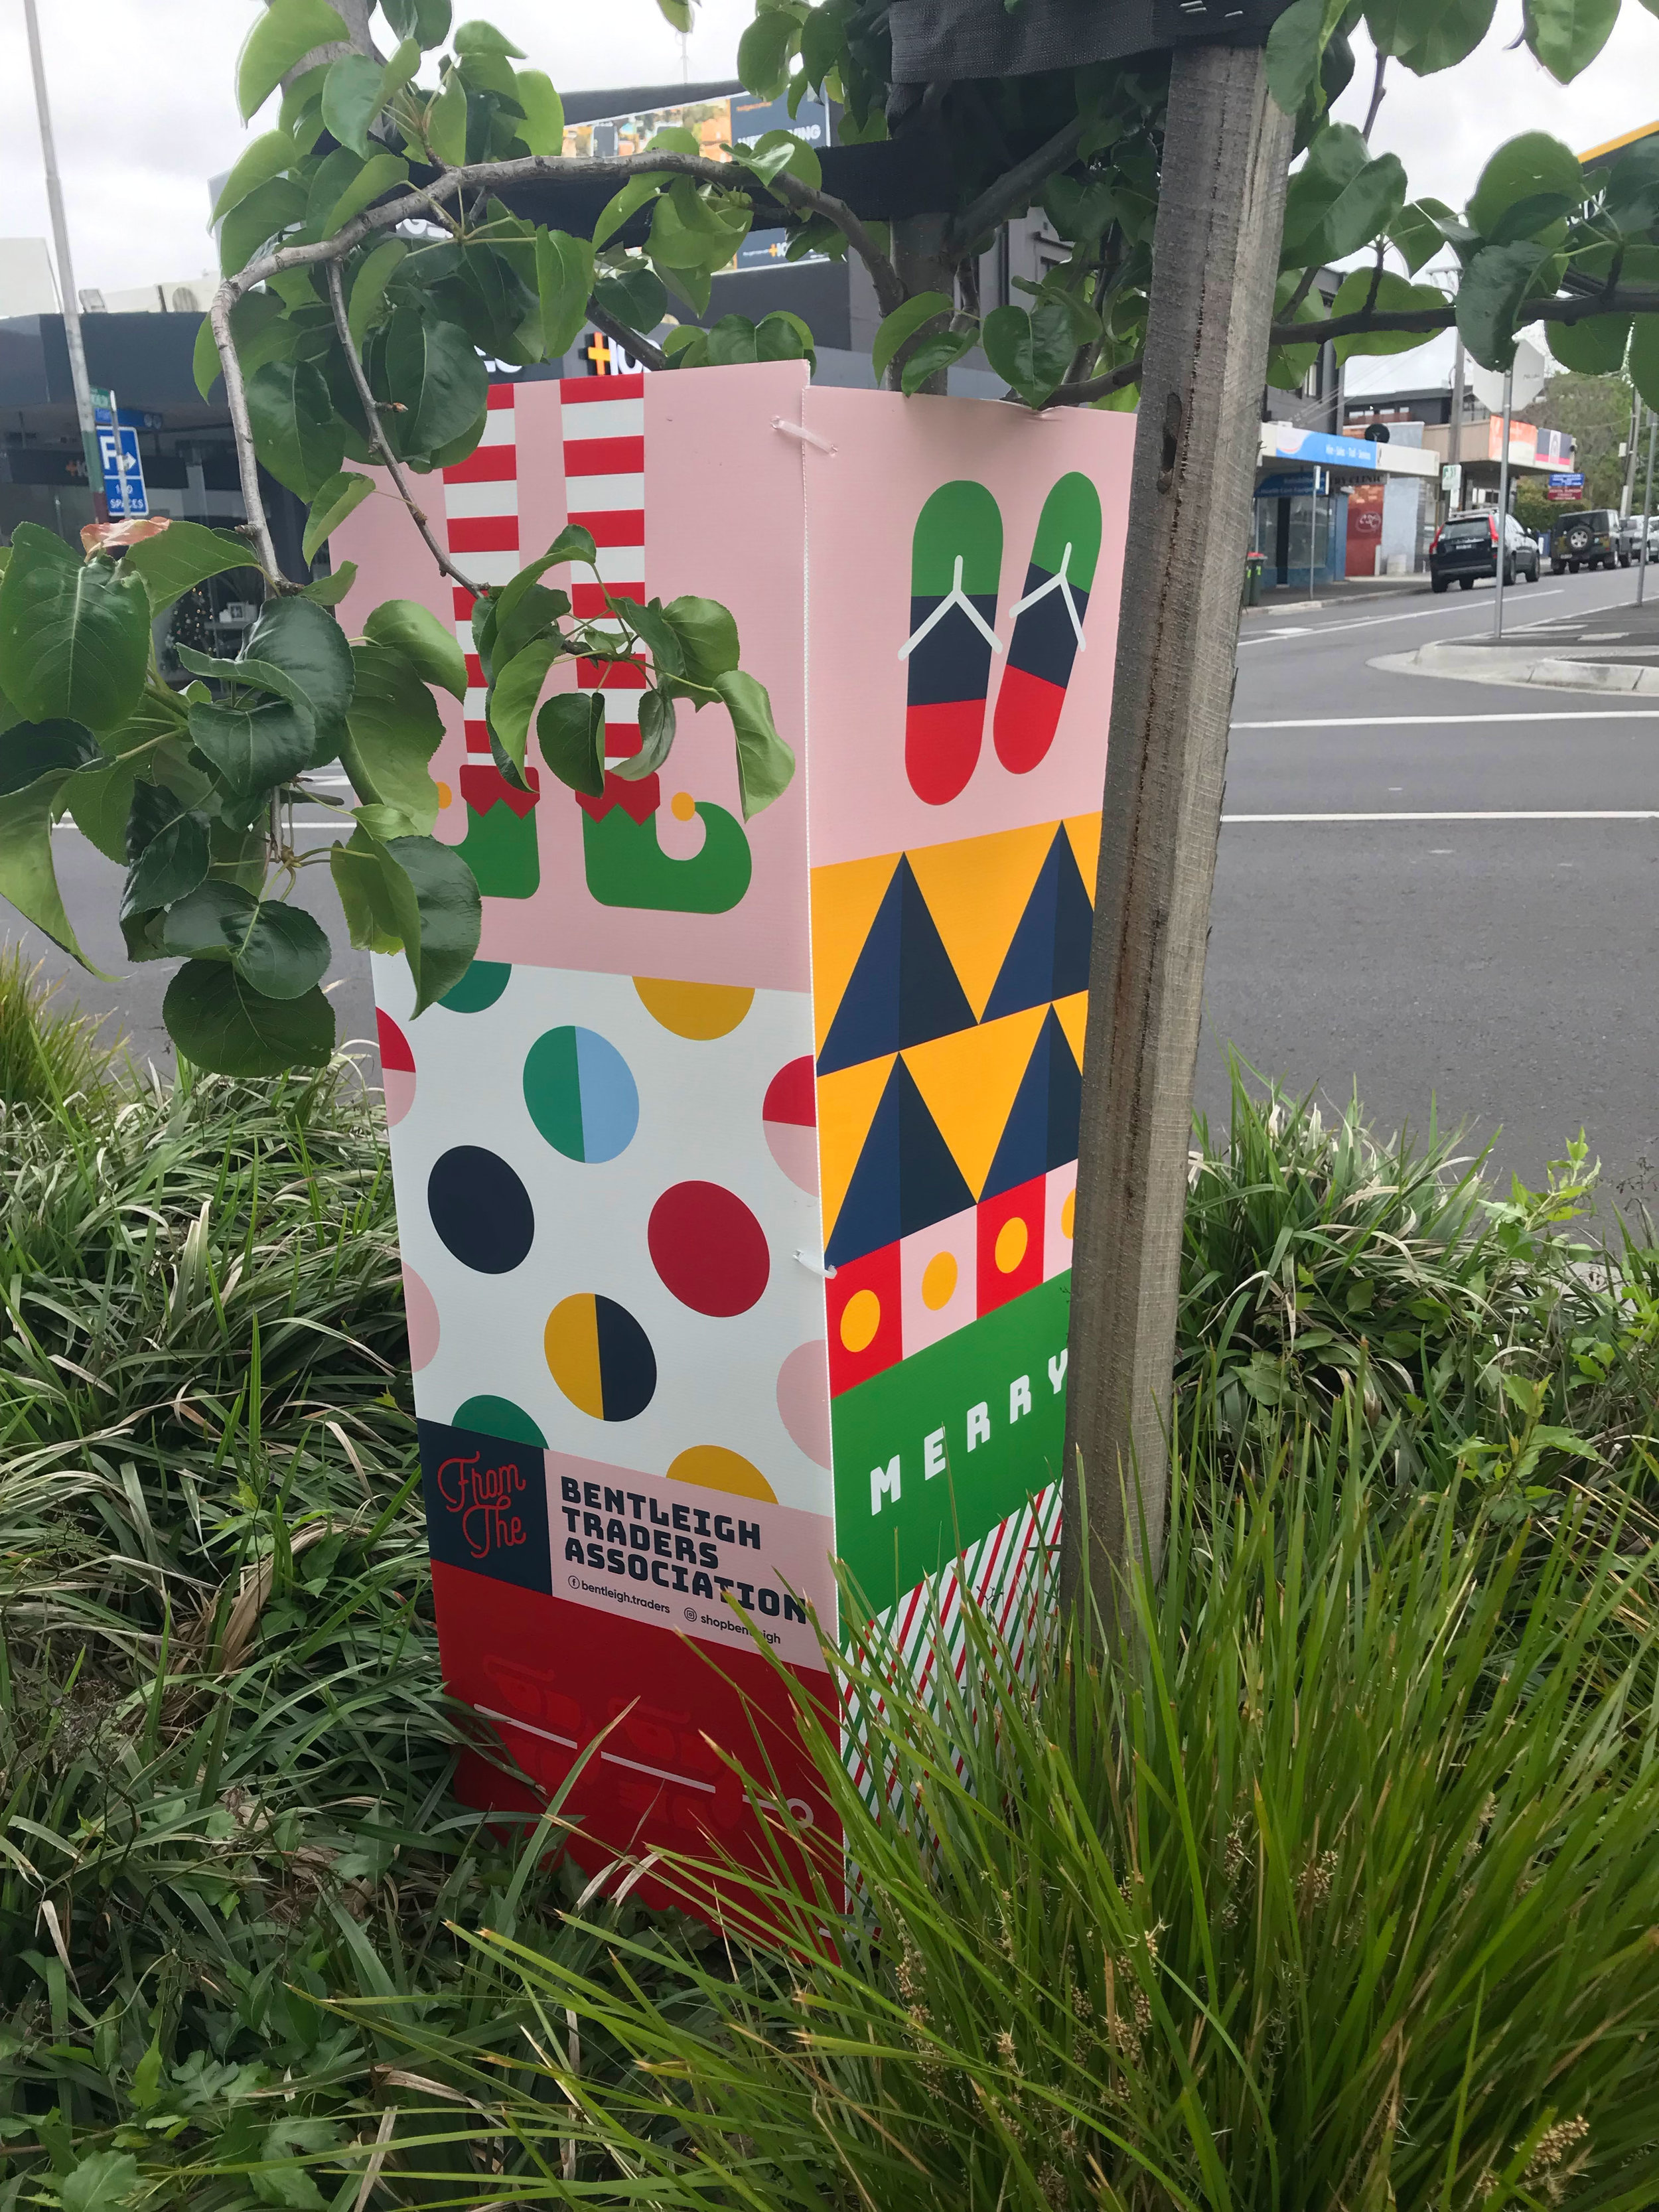 Bentleigh Traders christmas decorations